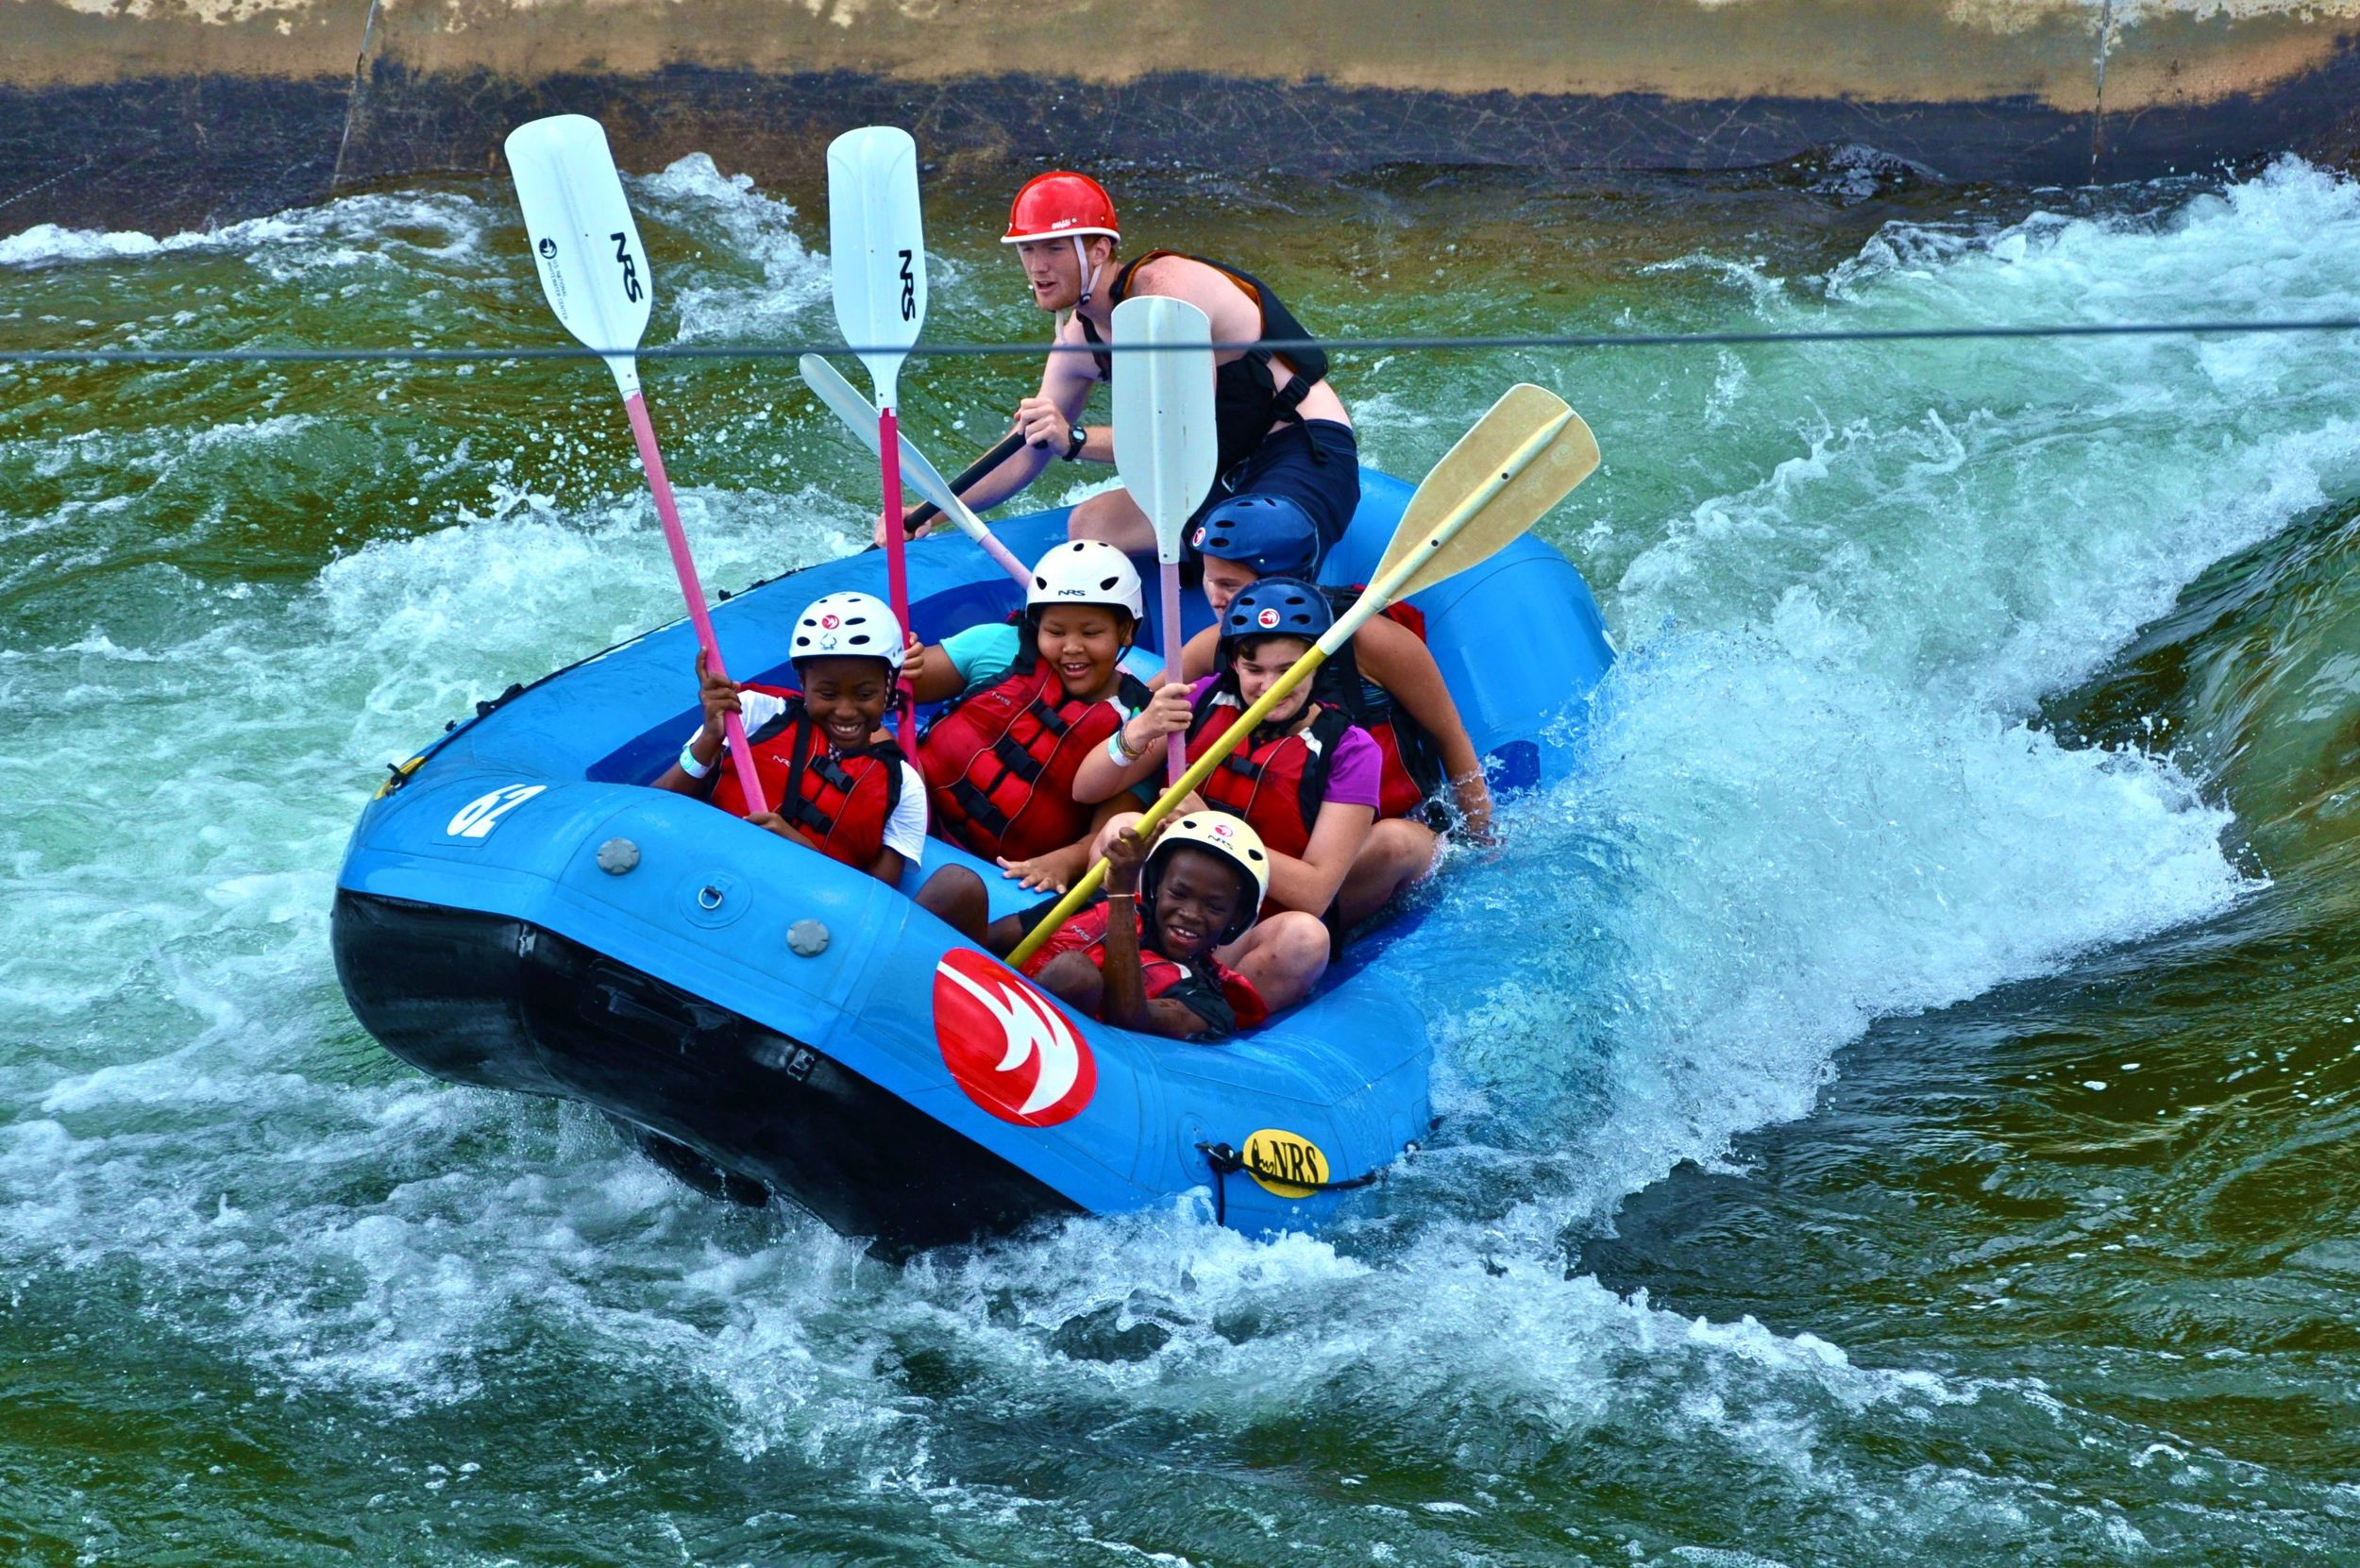 cynia-jazel-regianna-michelle-and-marguerite-go-22surfing22-during-whitewater-rafting.jpg